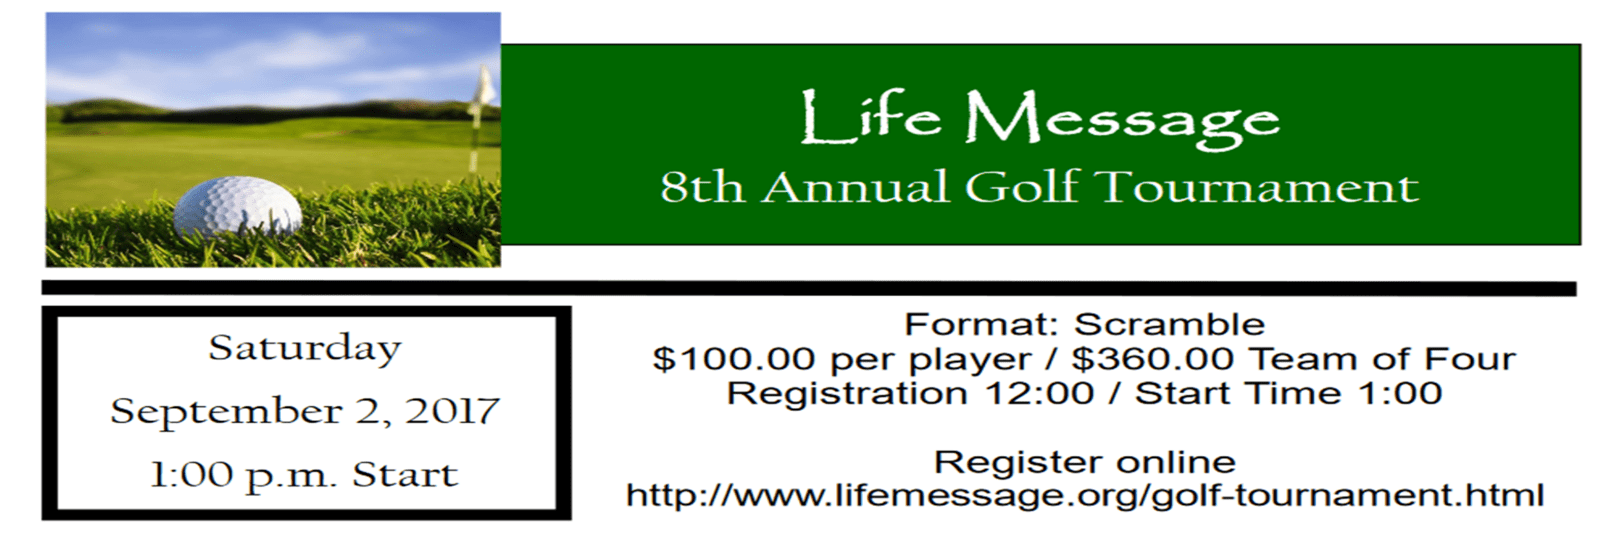 life-message-golf-w1600.png